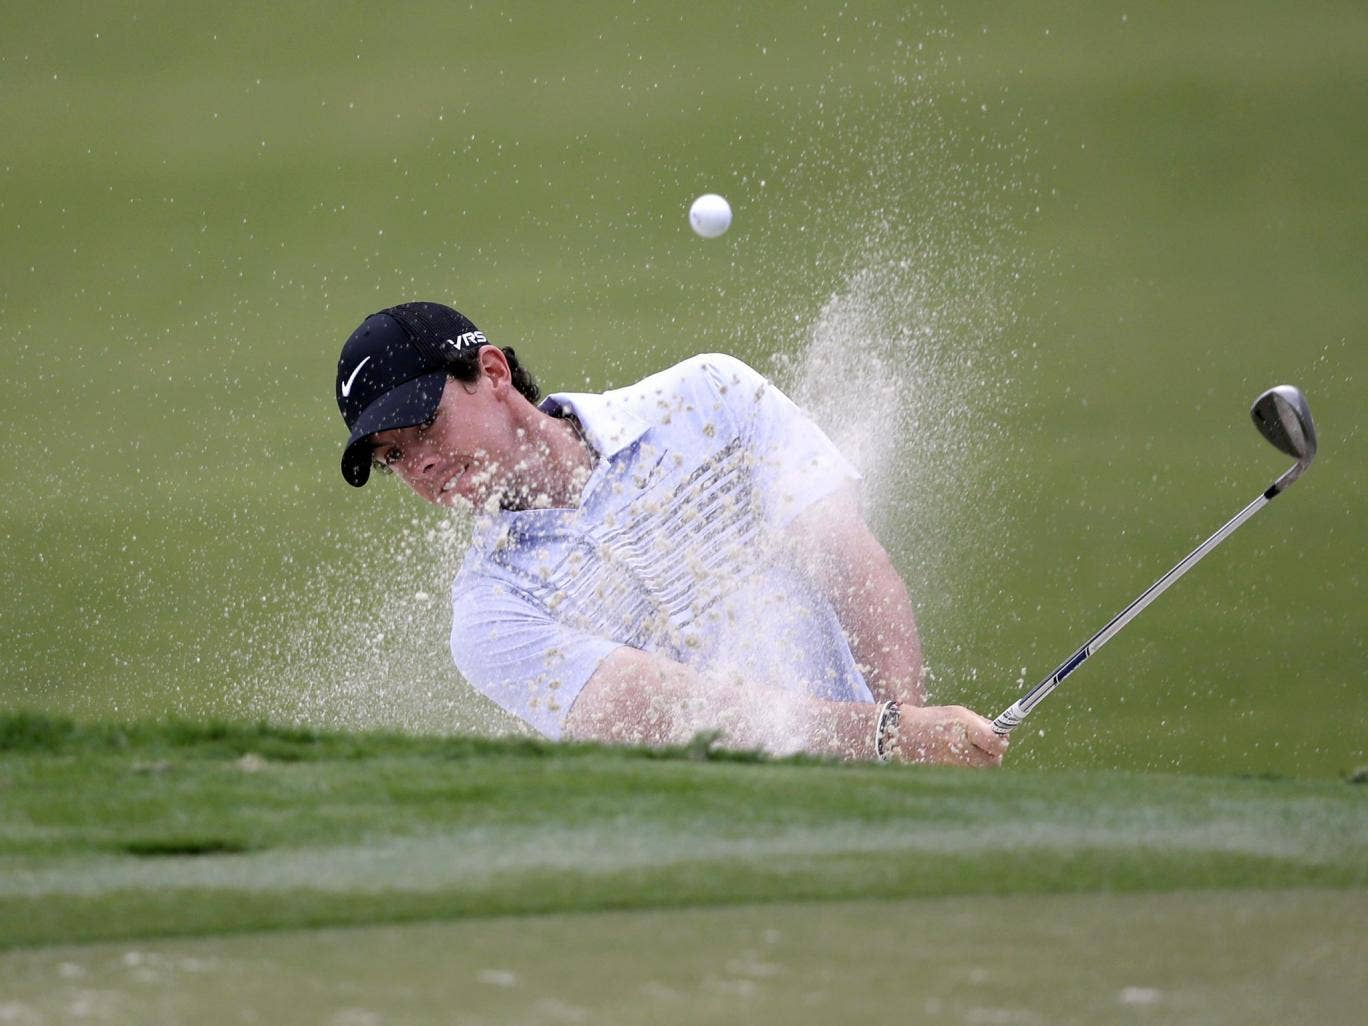 Rory McIlroy of Northern Ireland, hits from a 12th hole sand trap during the first round of the Cadillac Championship golf tournament